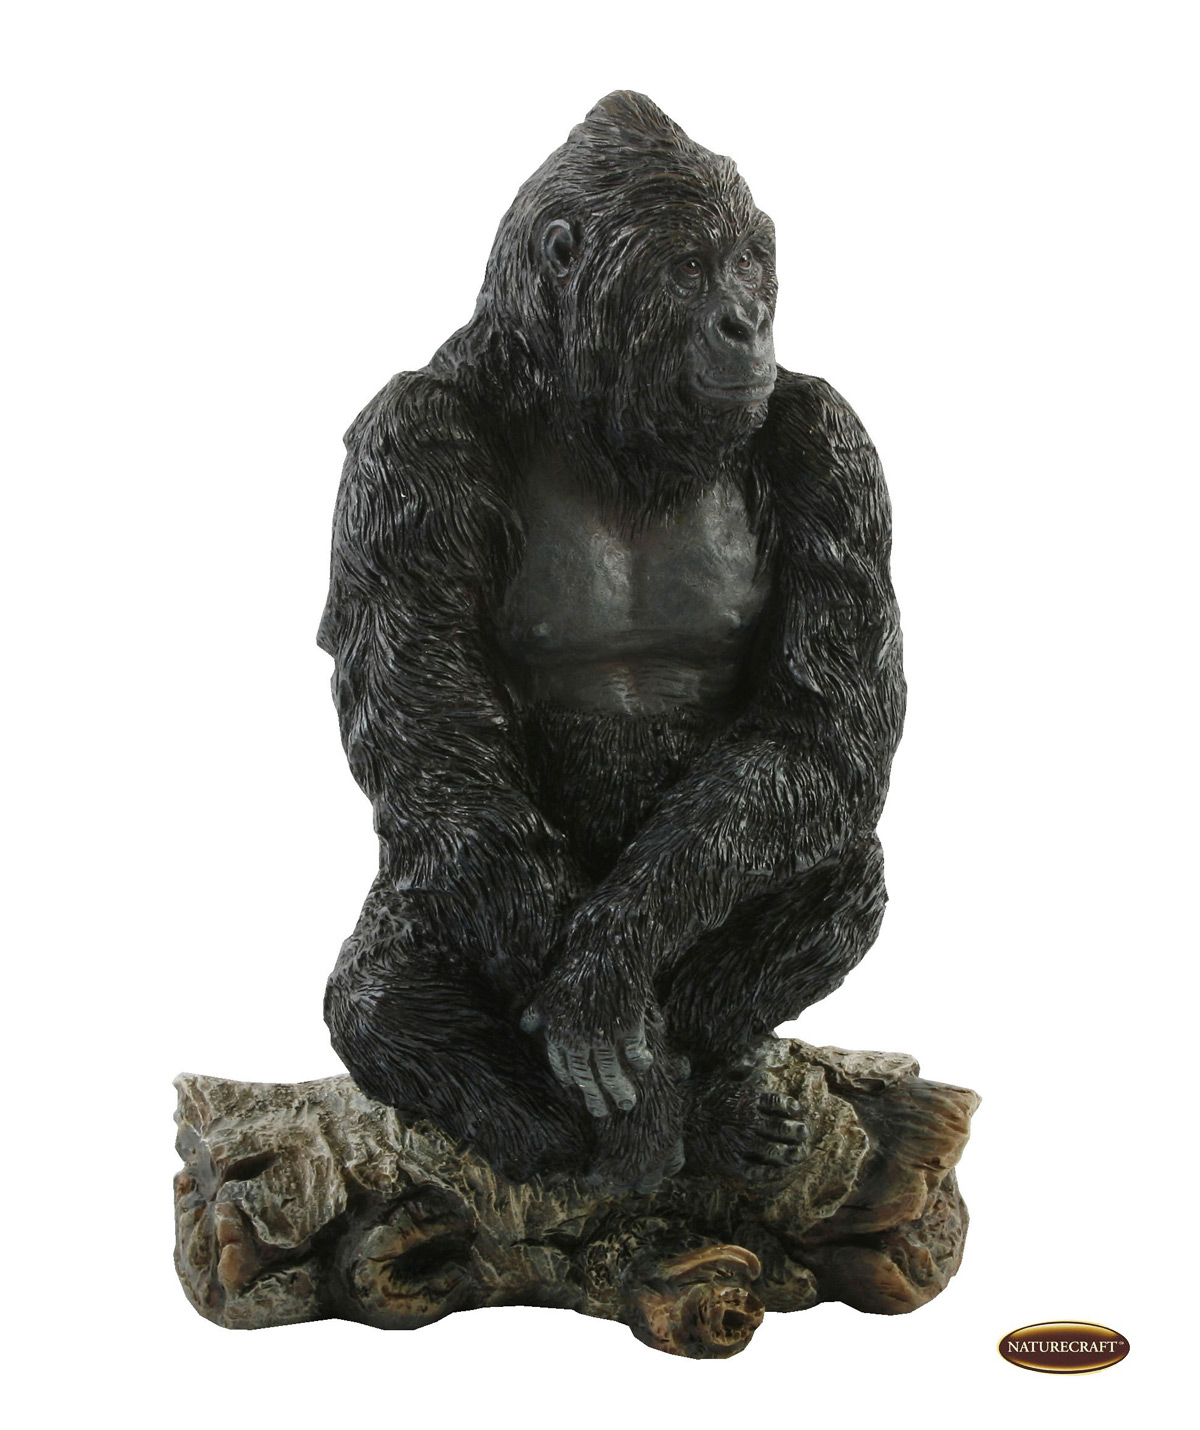 Lifelike adult gorilla sitting on branch ornament figurine gift display statue ebay - Gorilla figurines ...